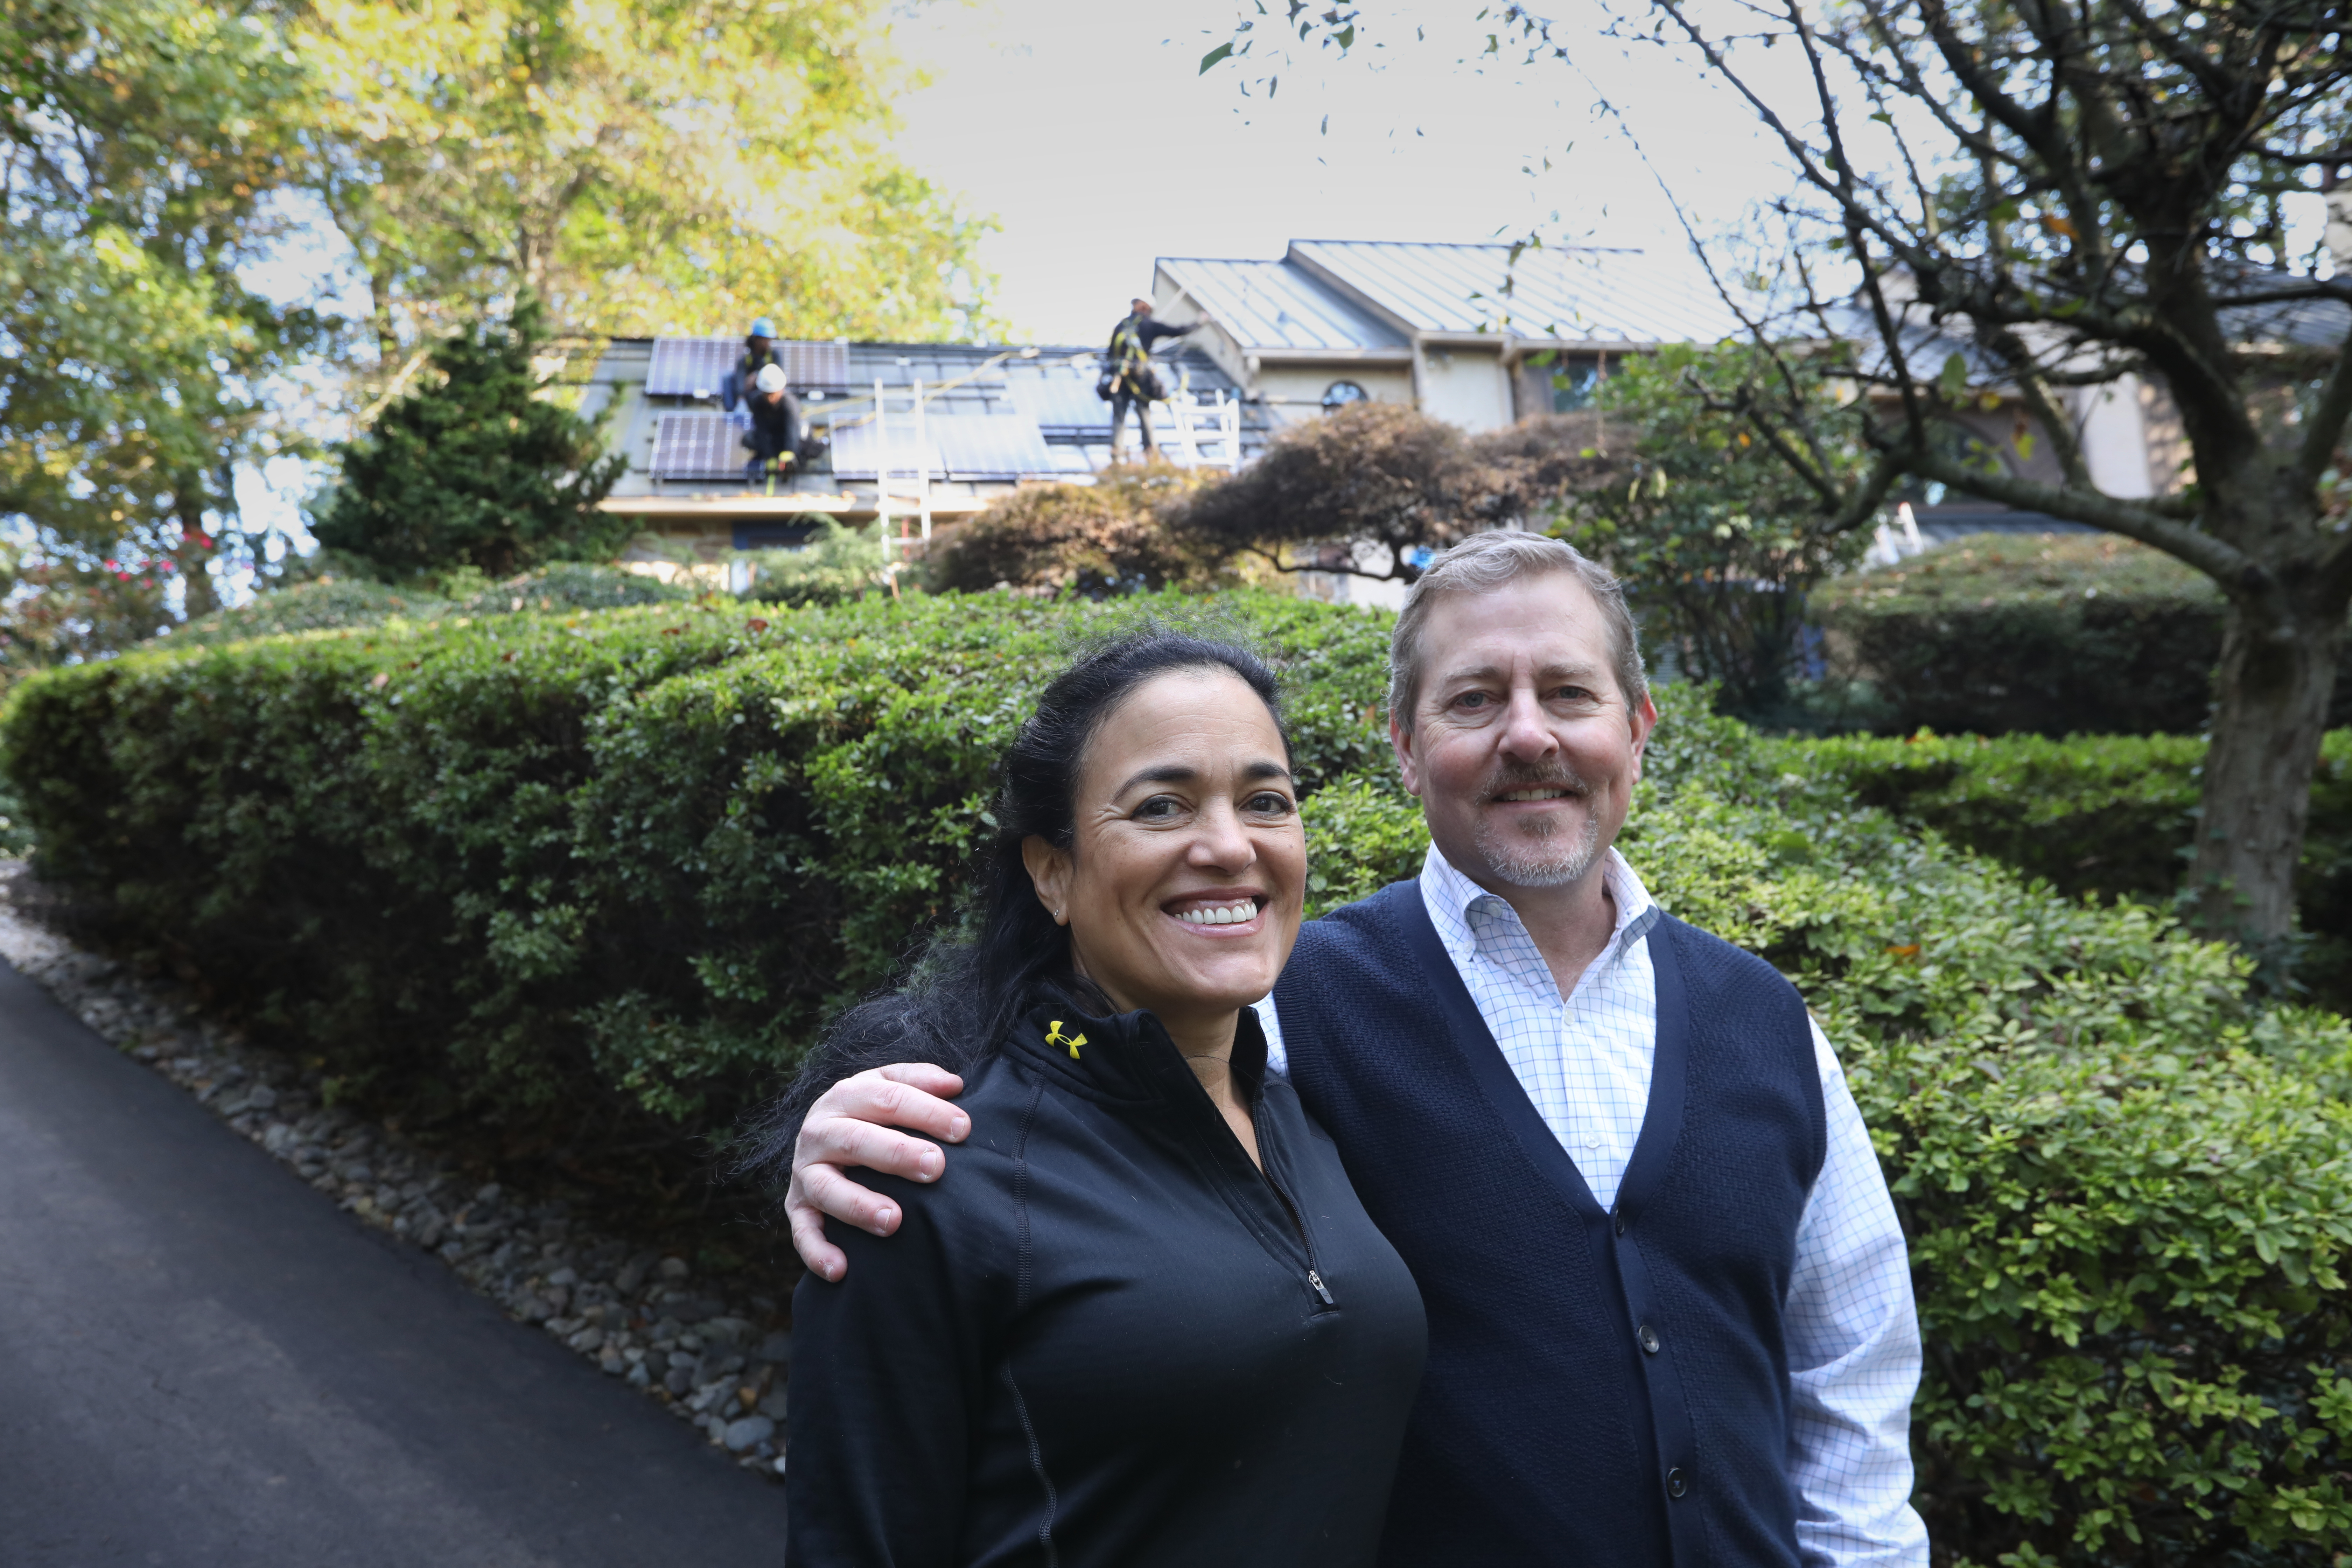 Yolanda and Bill Hopping stand outside their Birmingham Township home as a work crew installs a rooftop solar system.